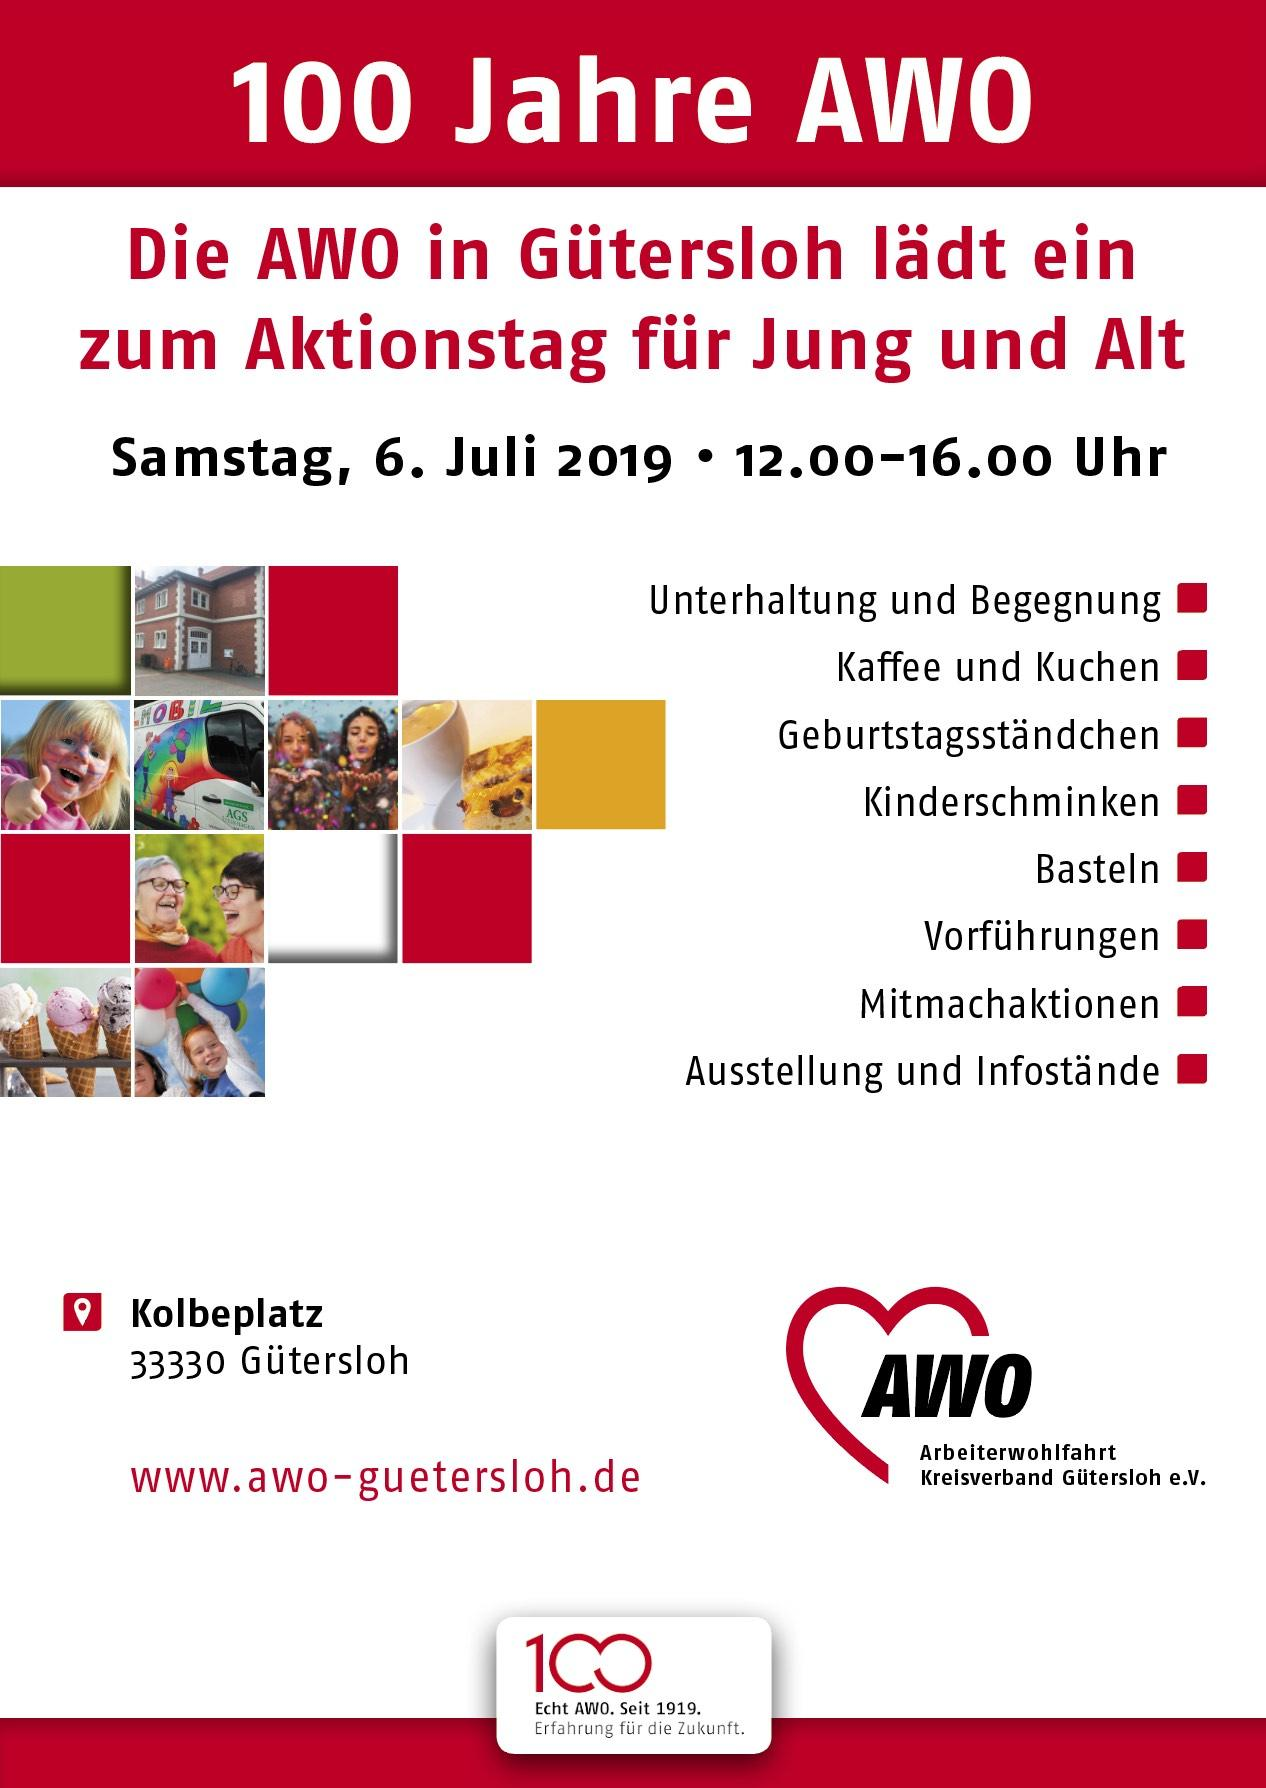 100 Jahre AWO Aktionstag Guetersloh